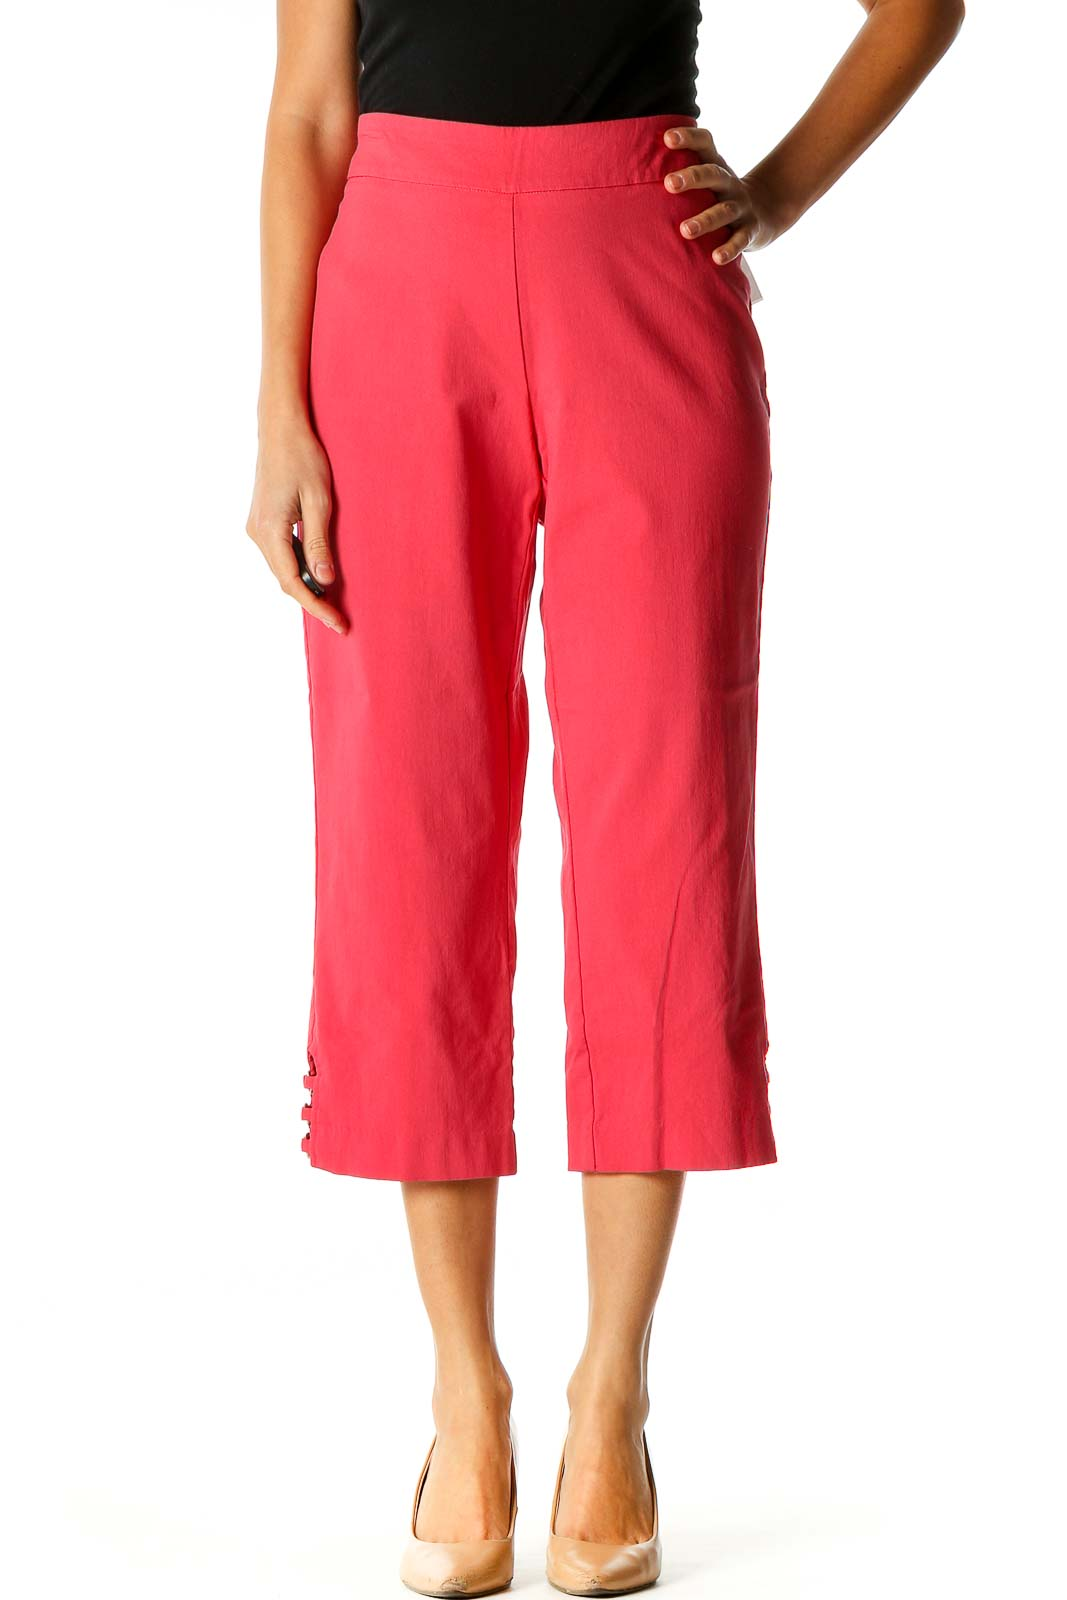 Pink Solid All Day Wear Capri Pants Front